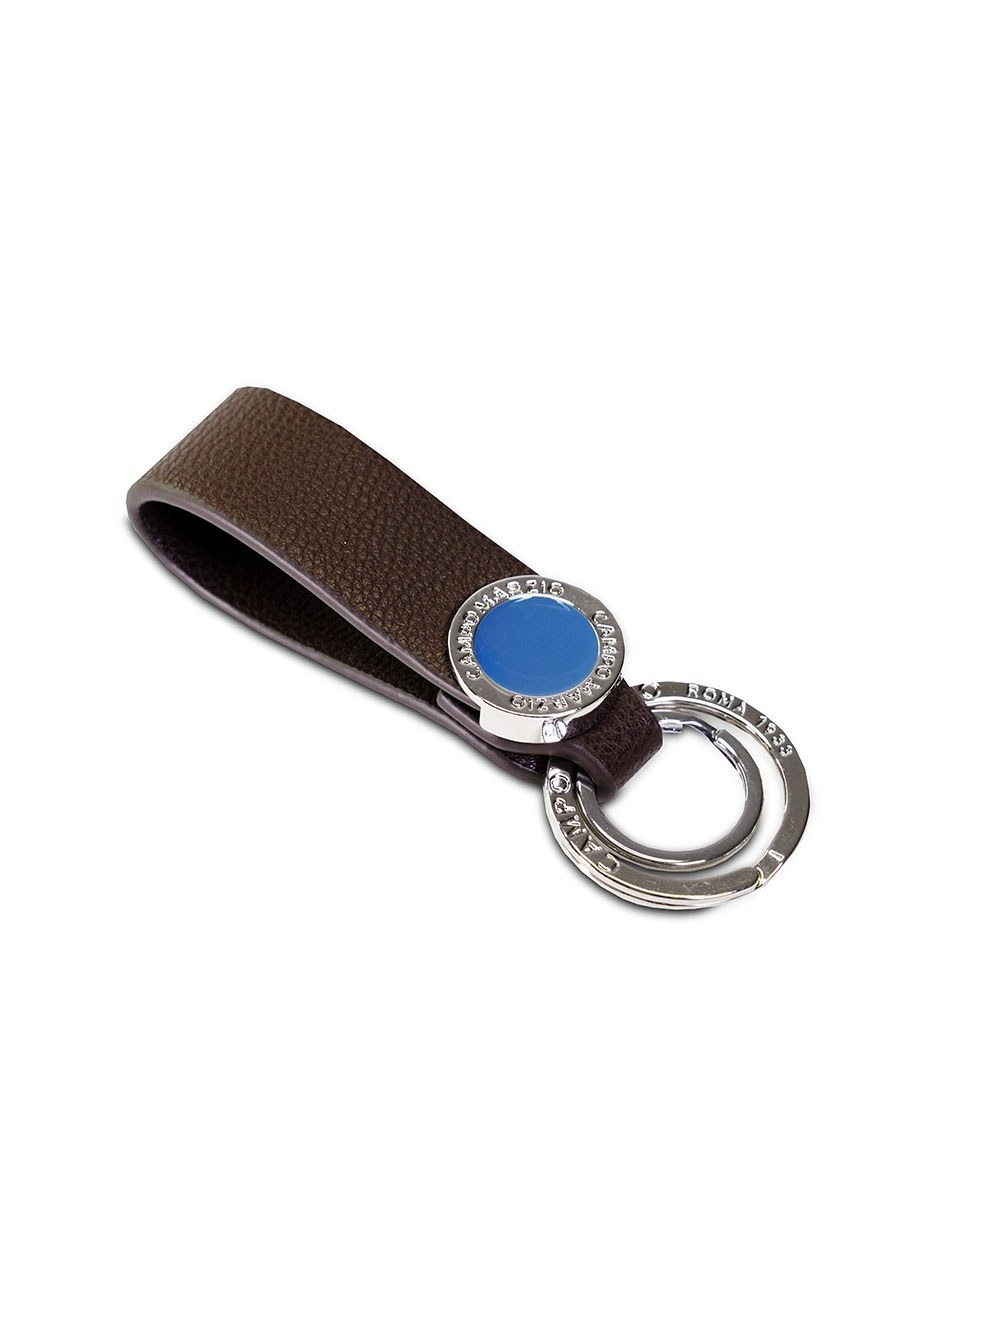 New Double Key Holder - Brown